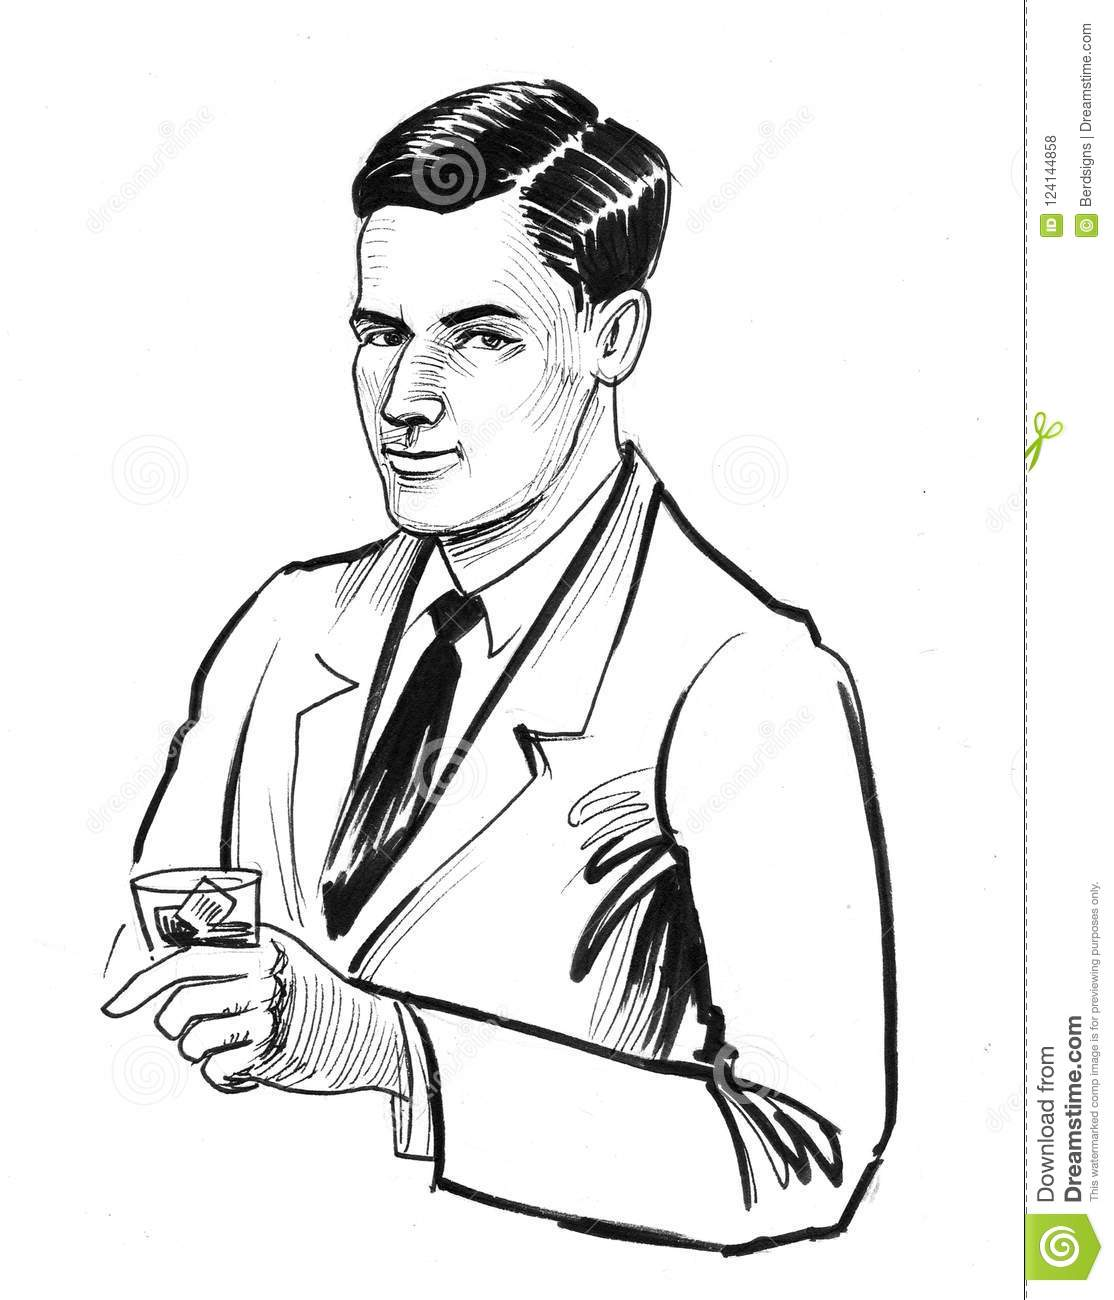 Ink black and white drawing of a man holding a glass of whiskey